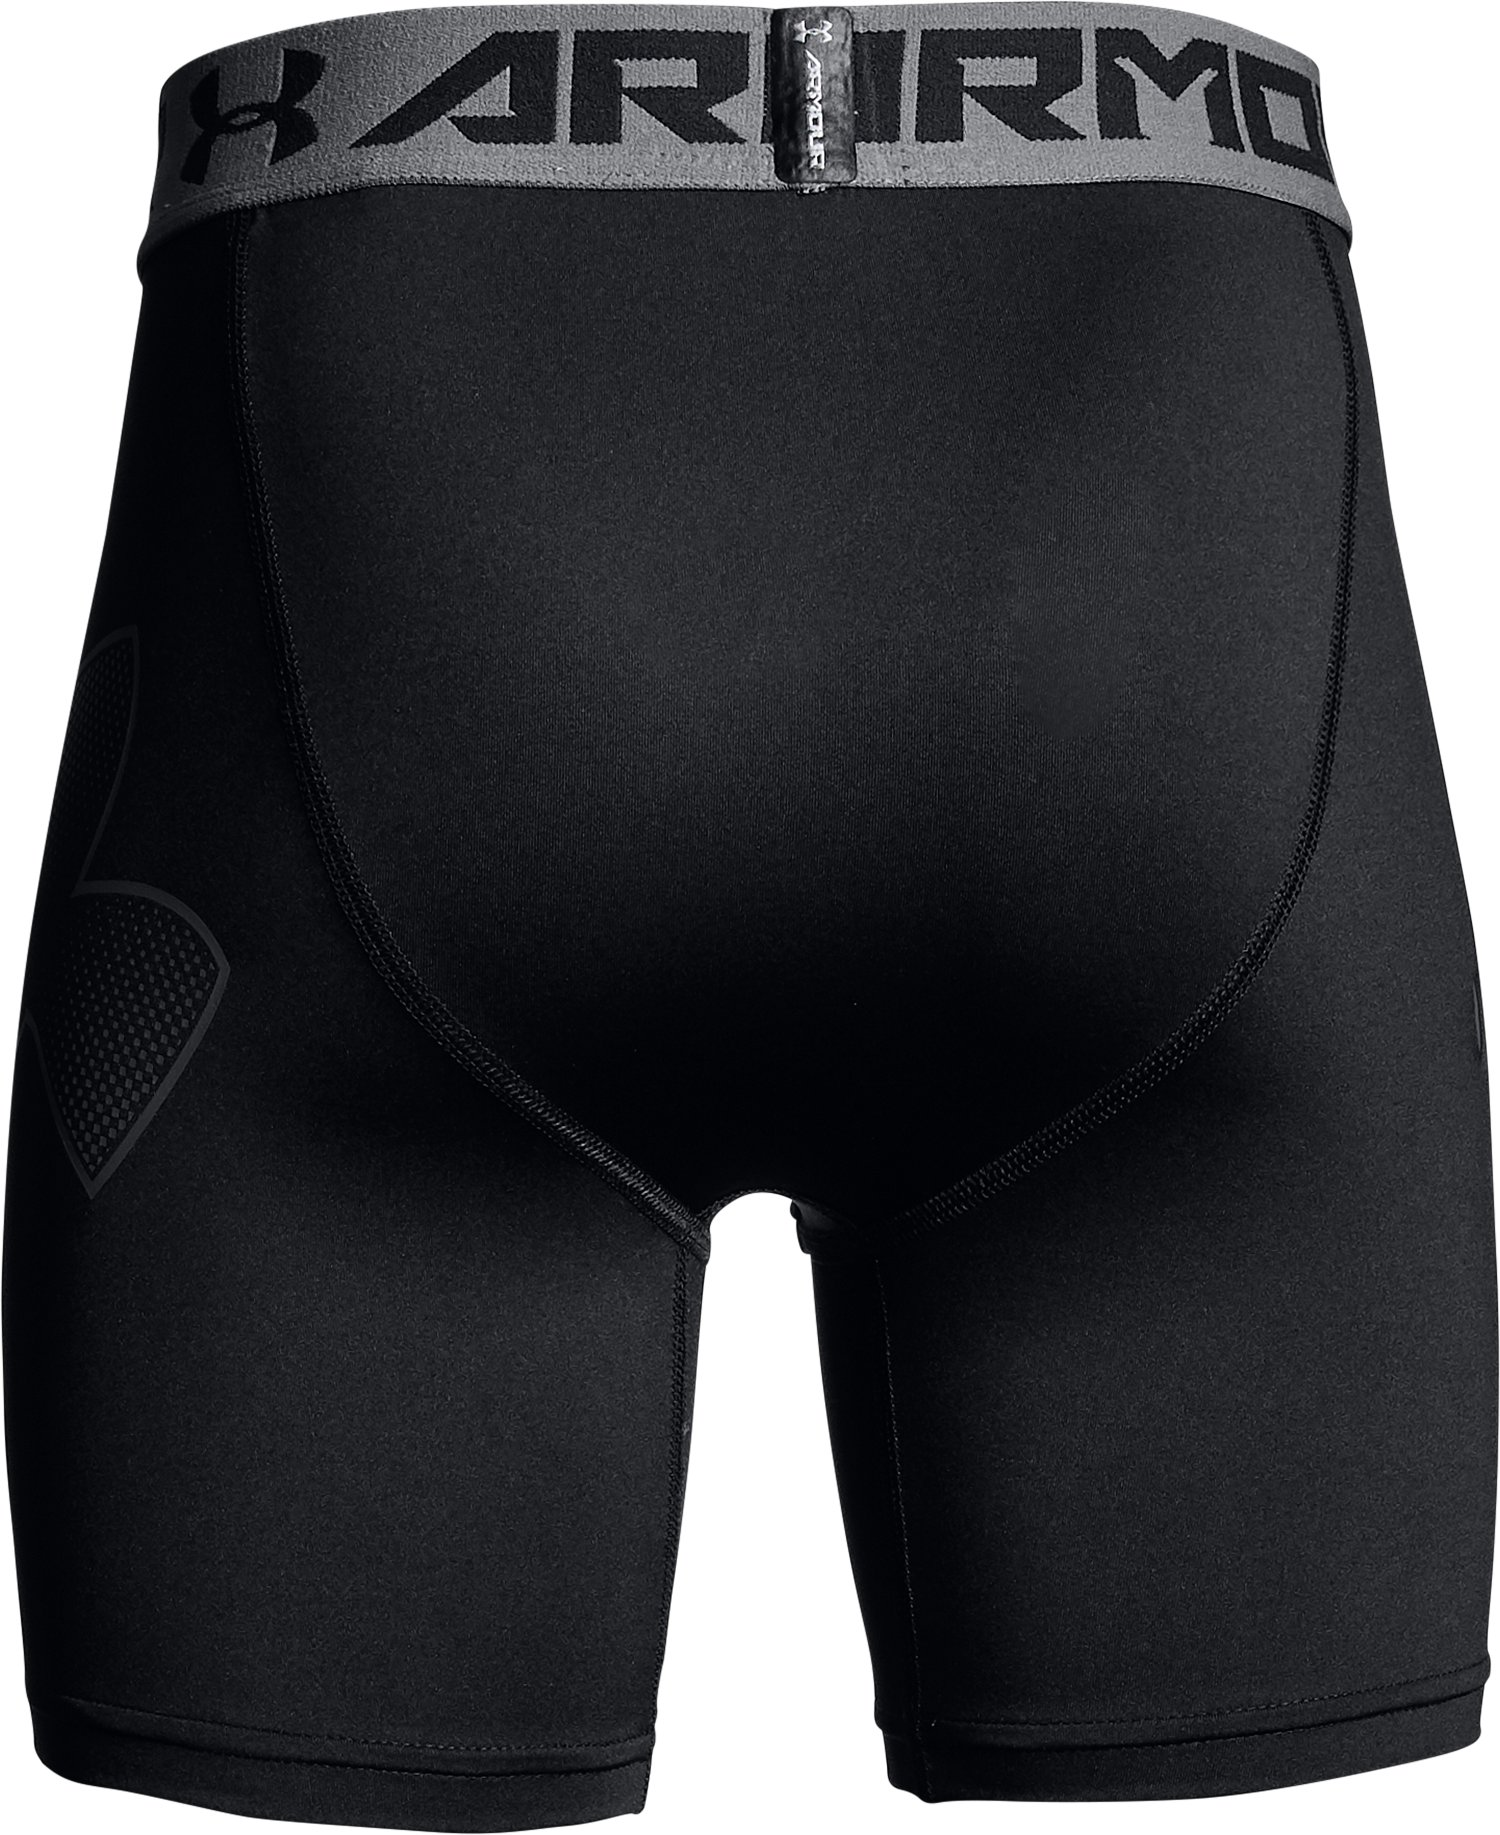 Boys' HeatGear® Armour Mid Shorts, Black , undefined